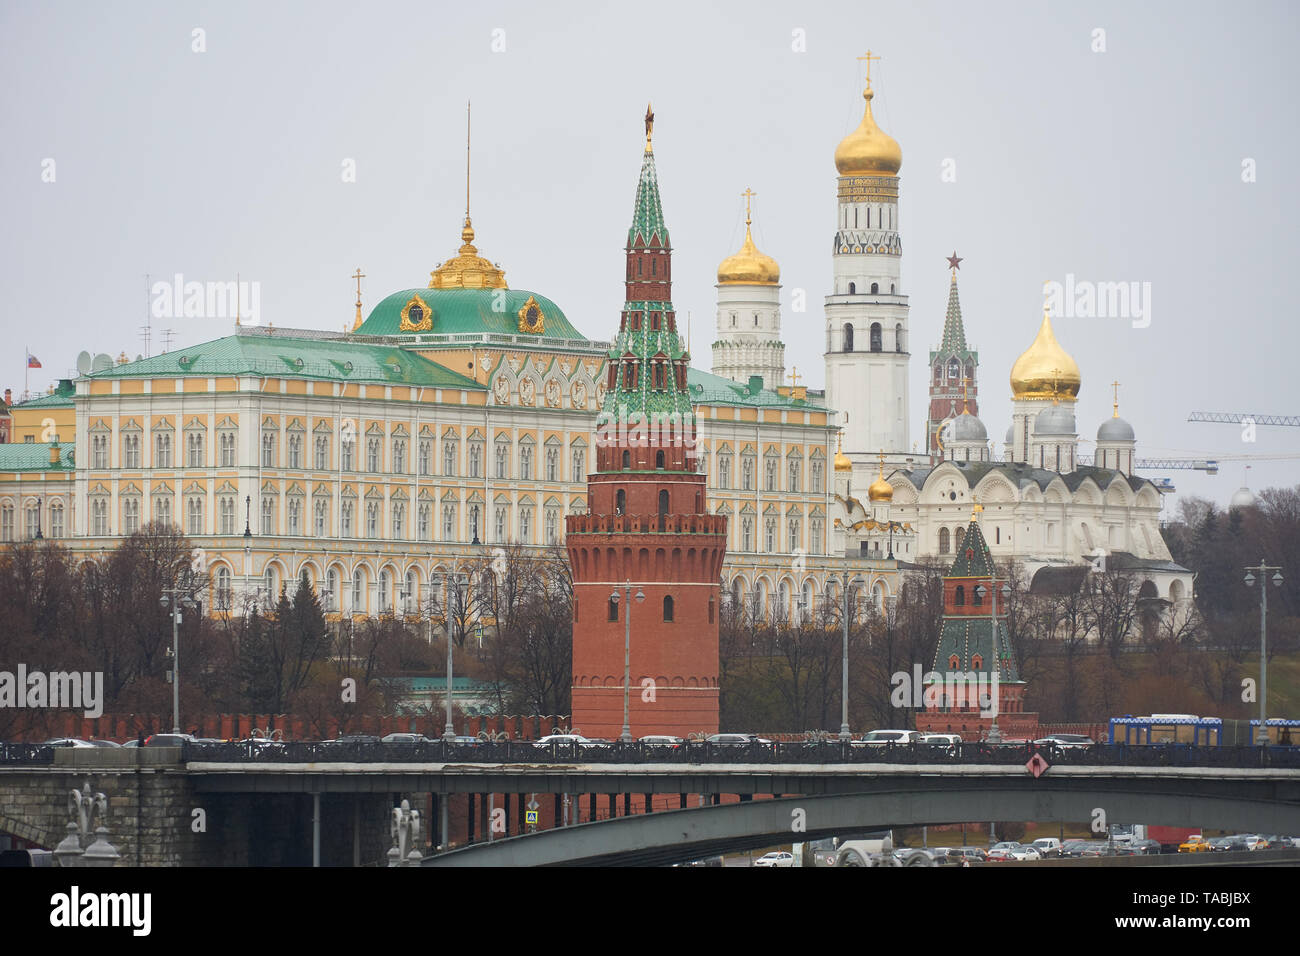 View of Moscow Kremlin, Grand Kremlin Palace and Kremlin cathedrals - Stock Image